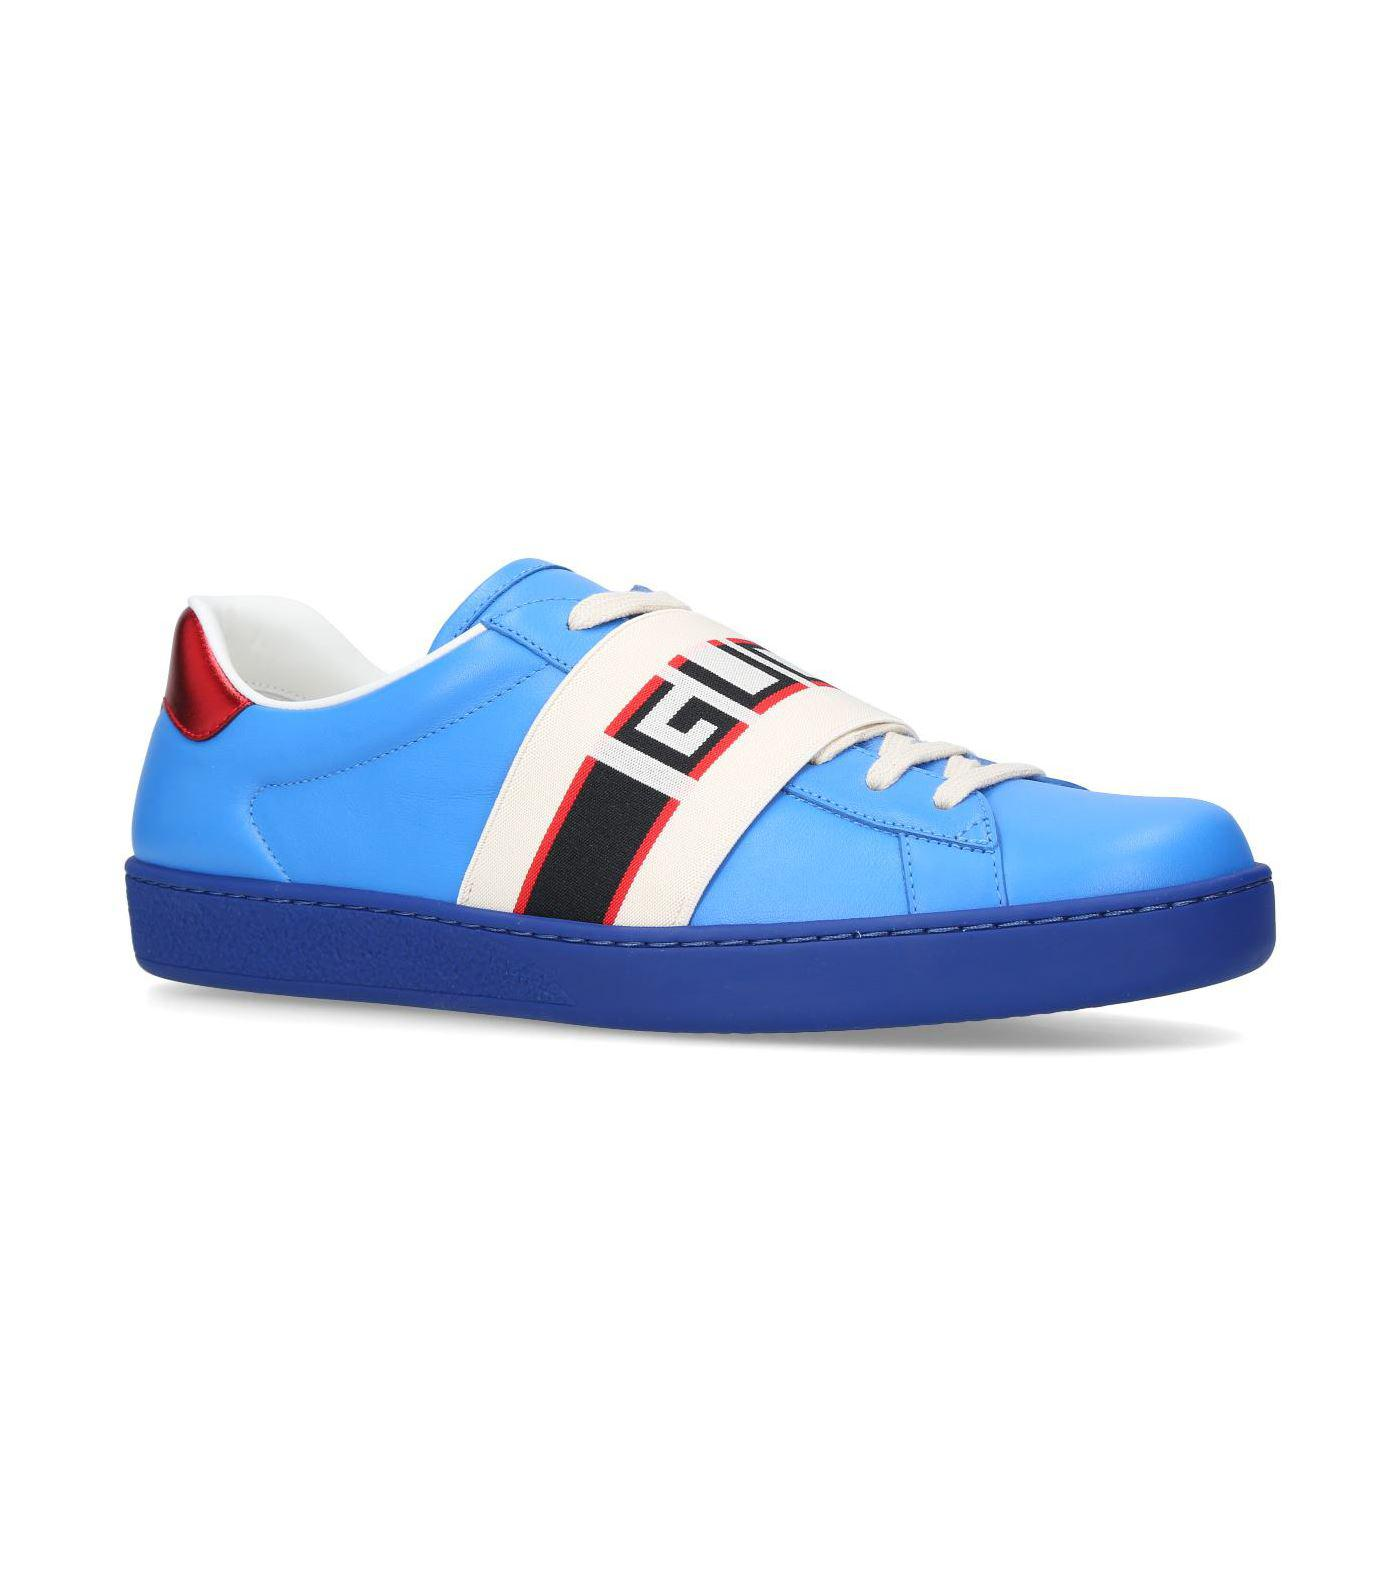 dcf3c62d174 Lyst - Gucci Logo-print Leather Sneakers in Blue for Men - Save 21%